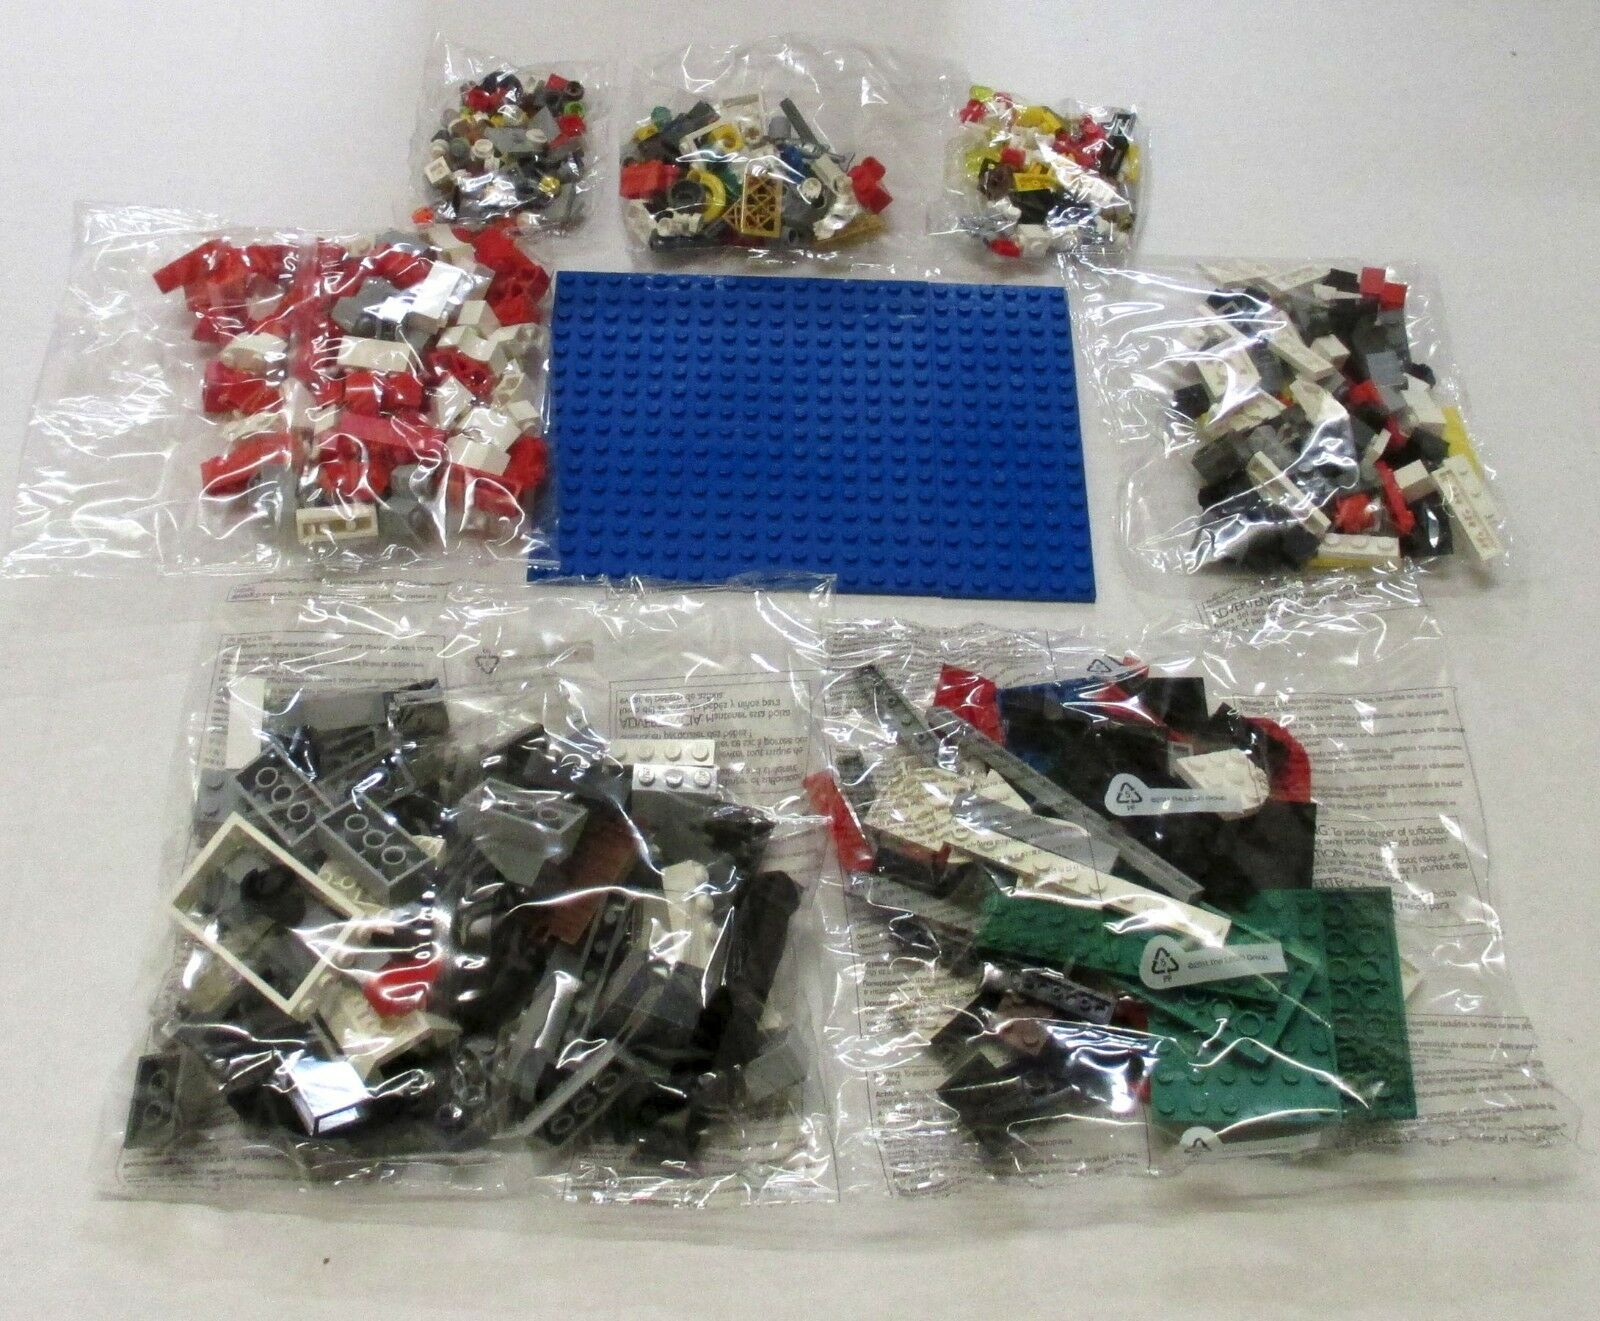 LEGO Creator Lighthouse Island 5770 New in Sealed Sealed Sealed Bags 100% Complete - No Box 4f9824